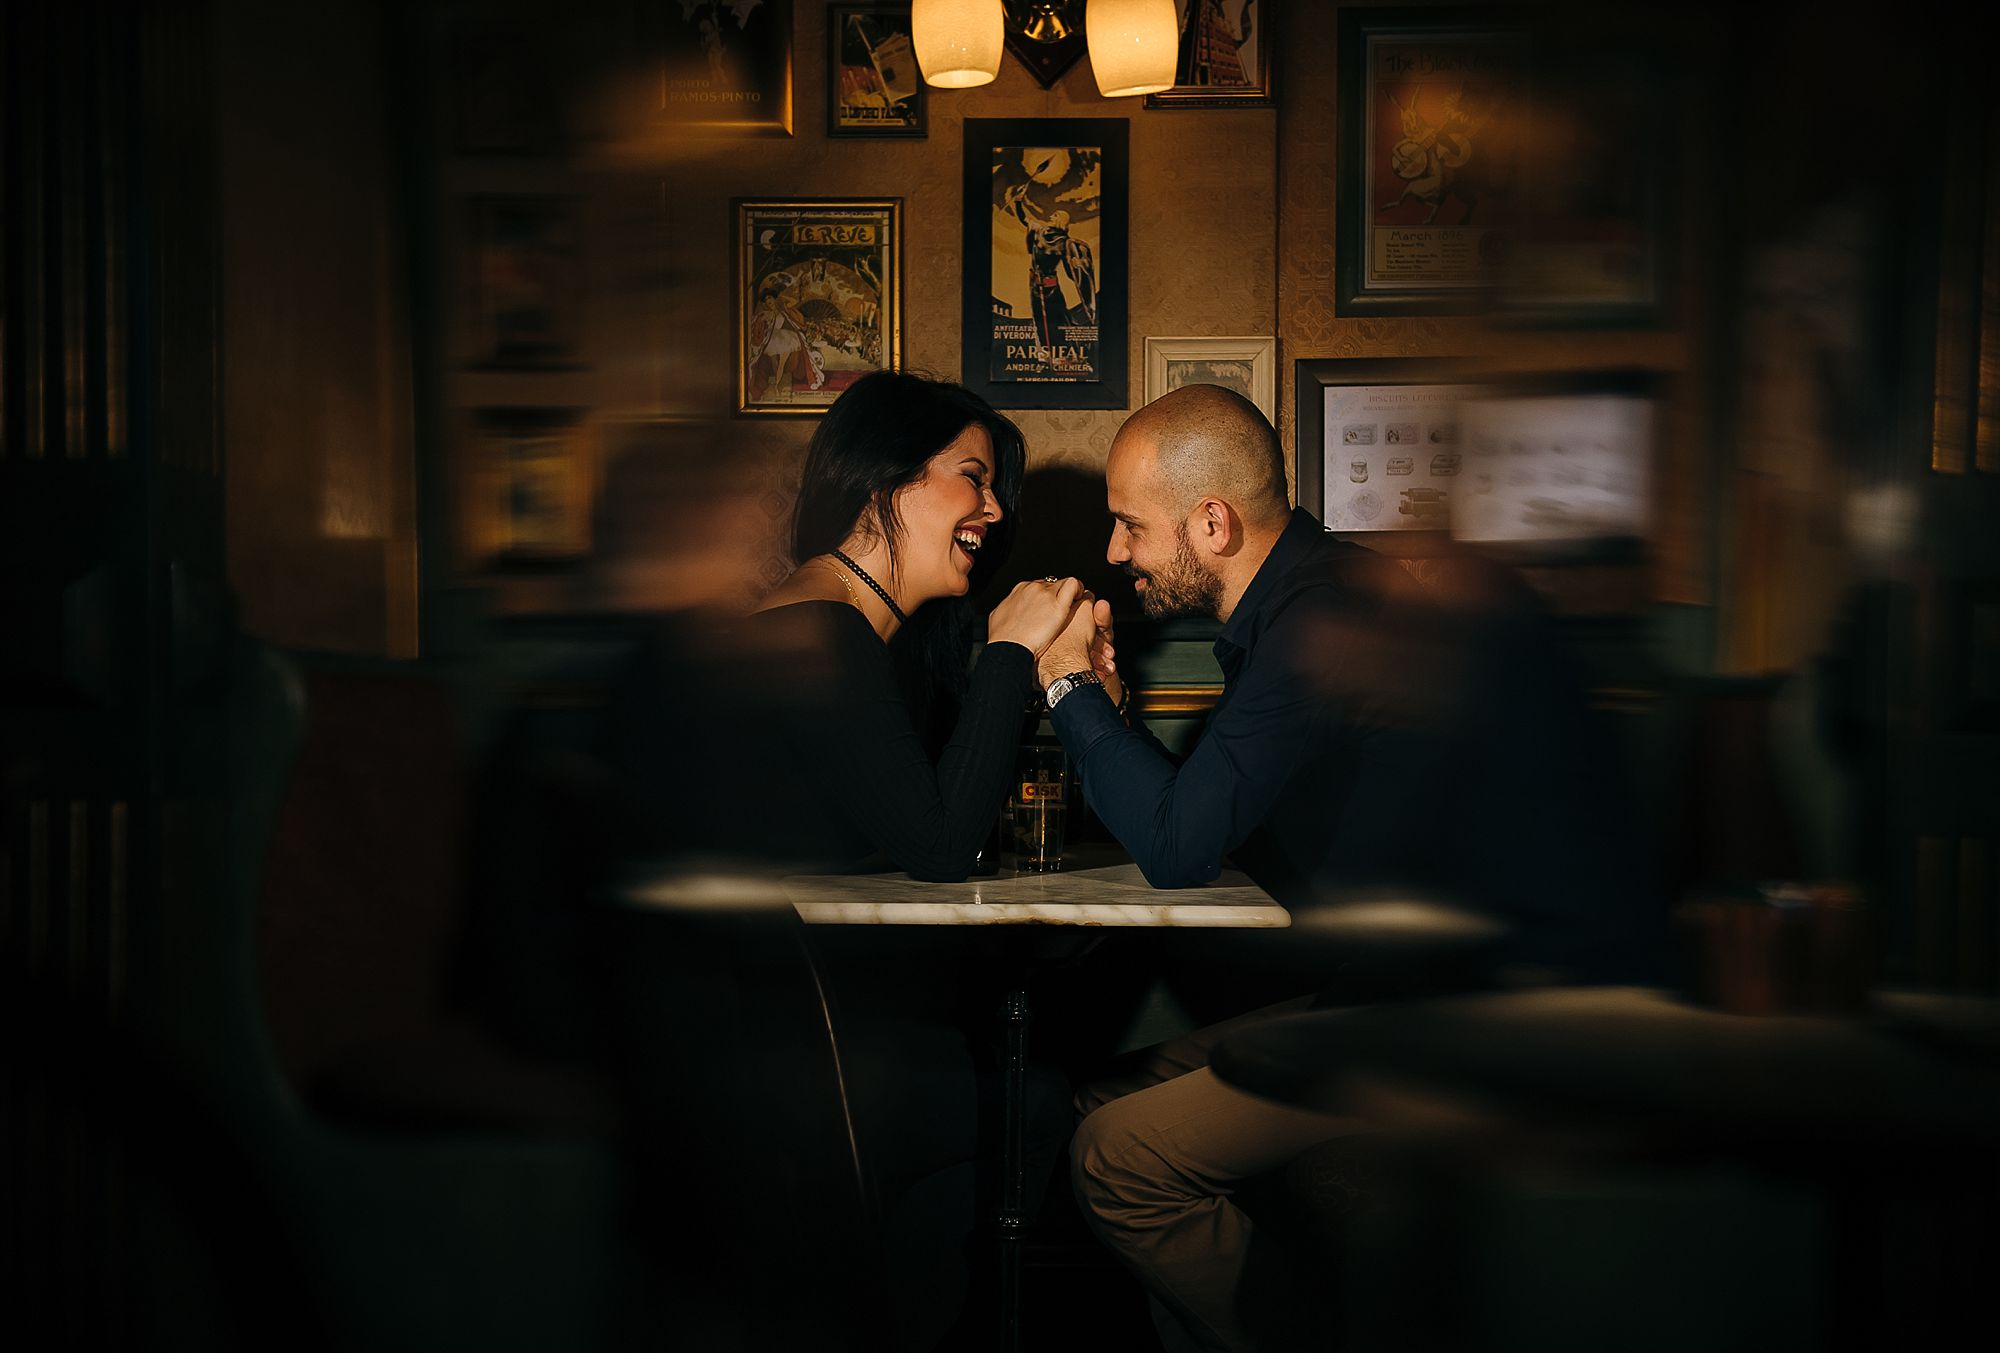 Lisa & Duncan - Engagement Session - Cafe Jubilee - Shane P. Watts Photography